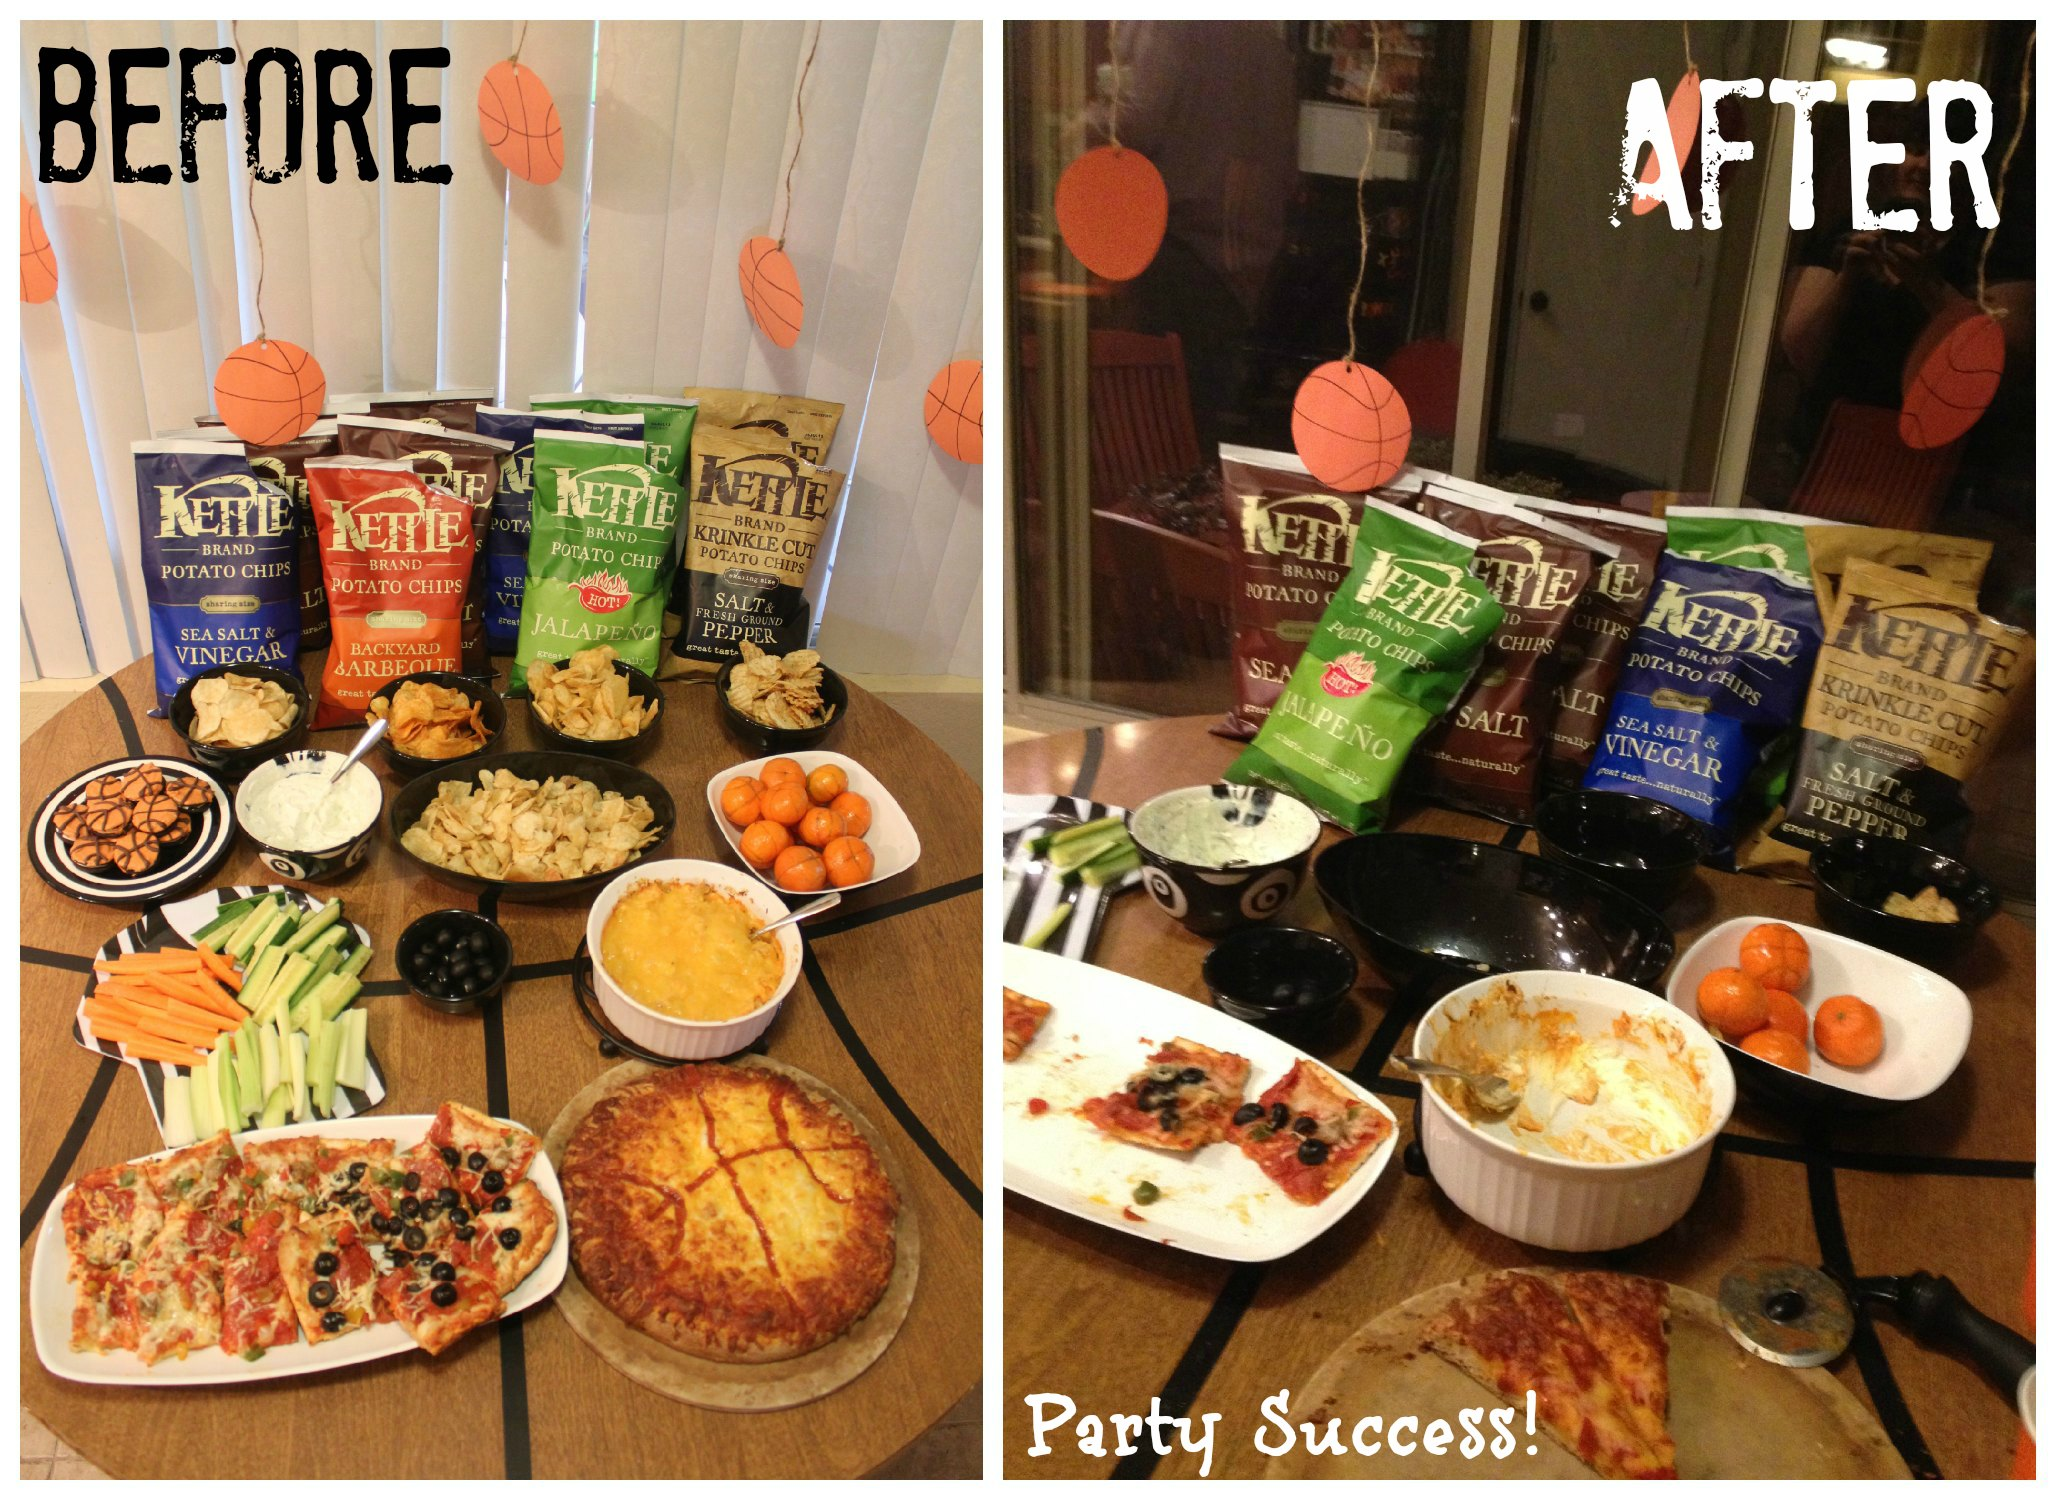 ... Basketball-Party-Before-After.jpg ...